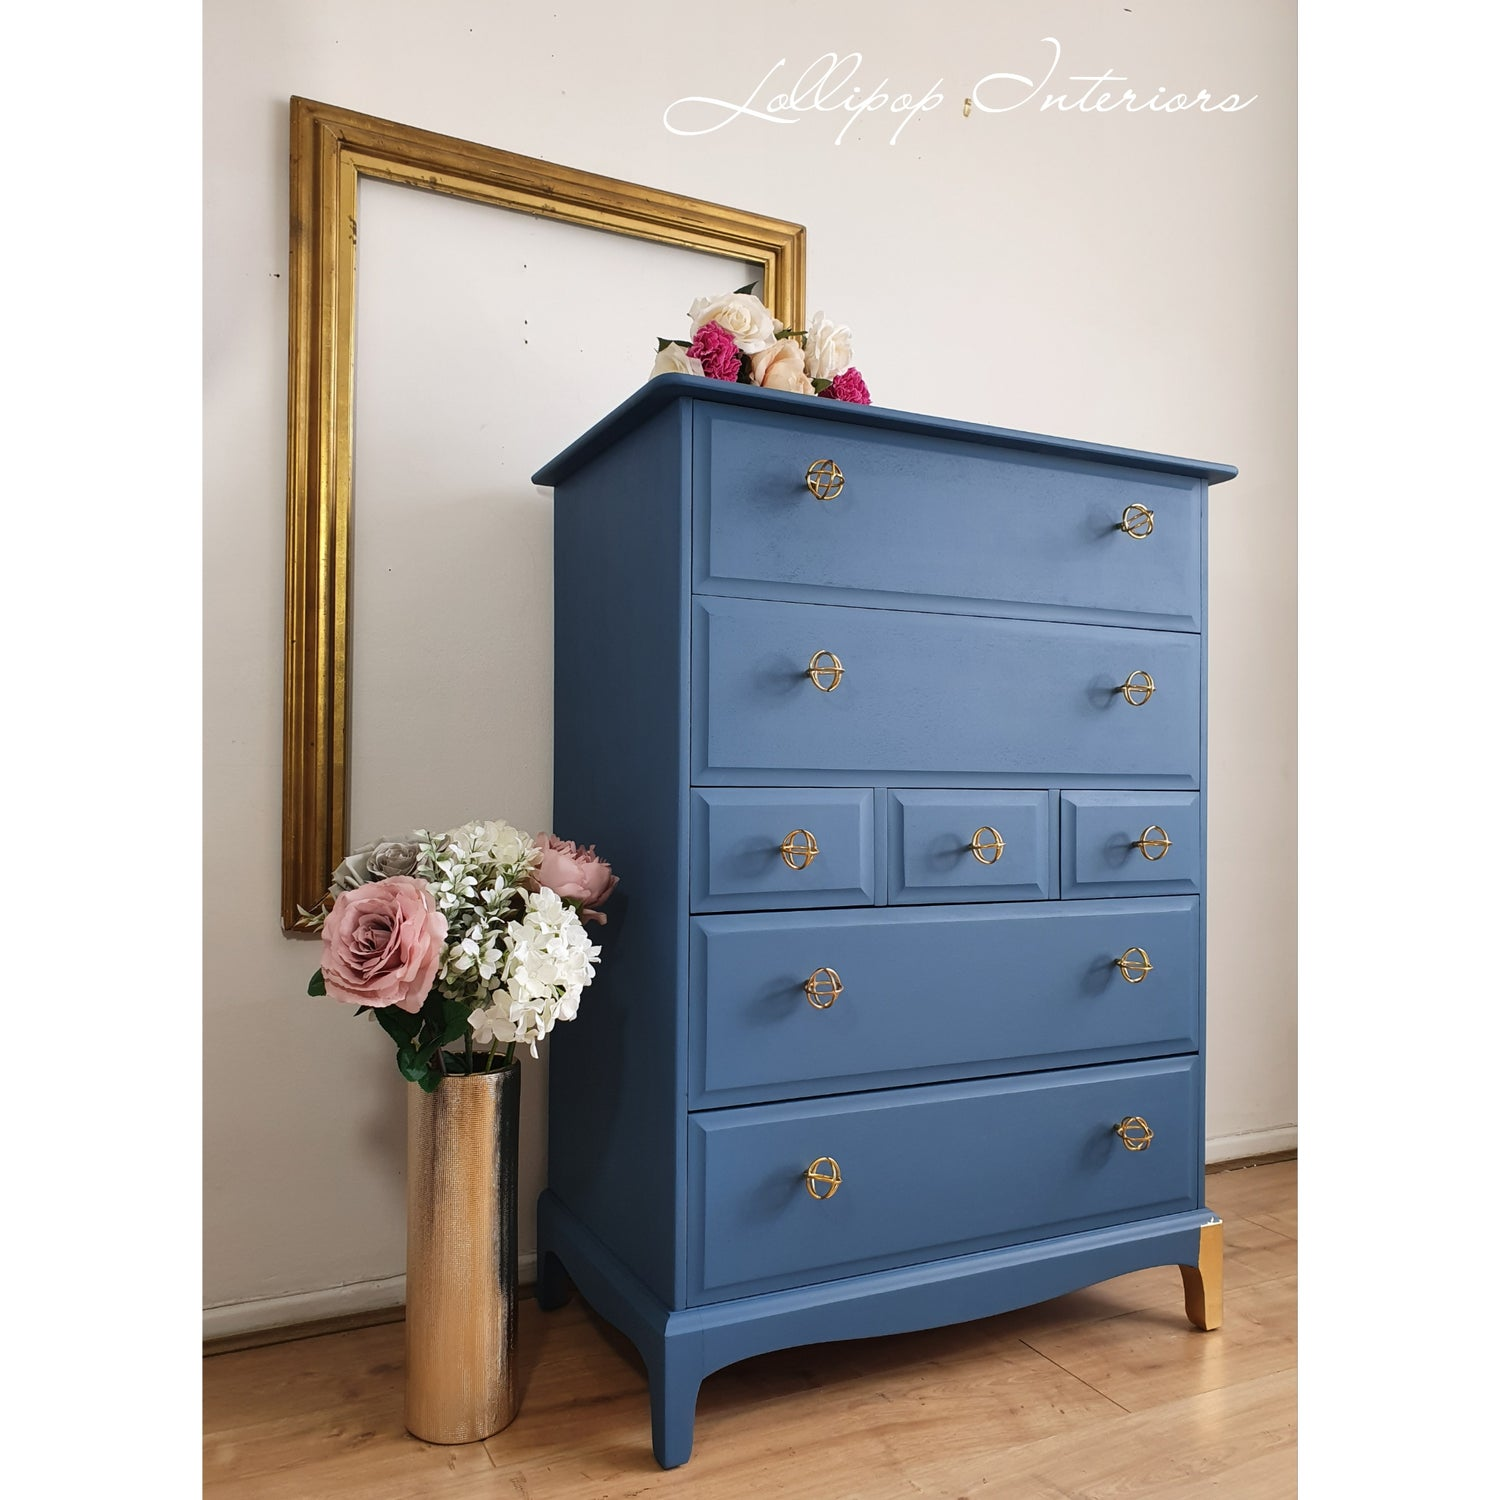 Image of Stag tallboy drawers in blue with gold handles